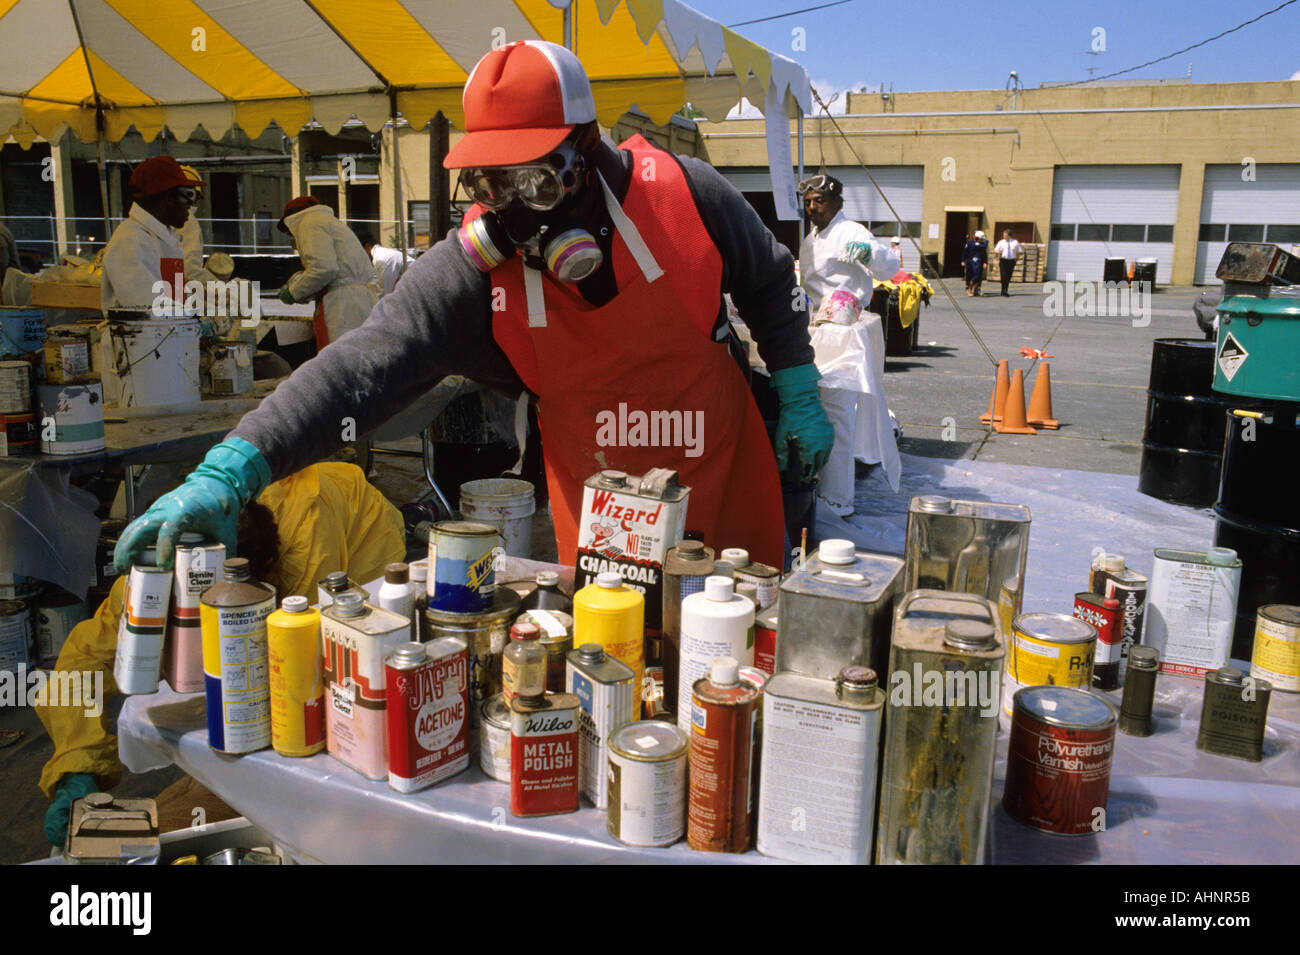 Volunteers Help Dispose Of Toxic Household Products Such